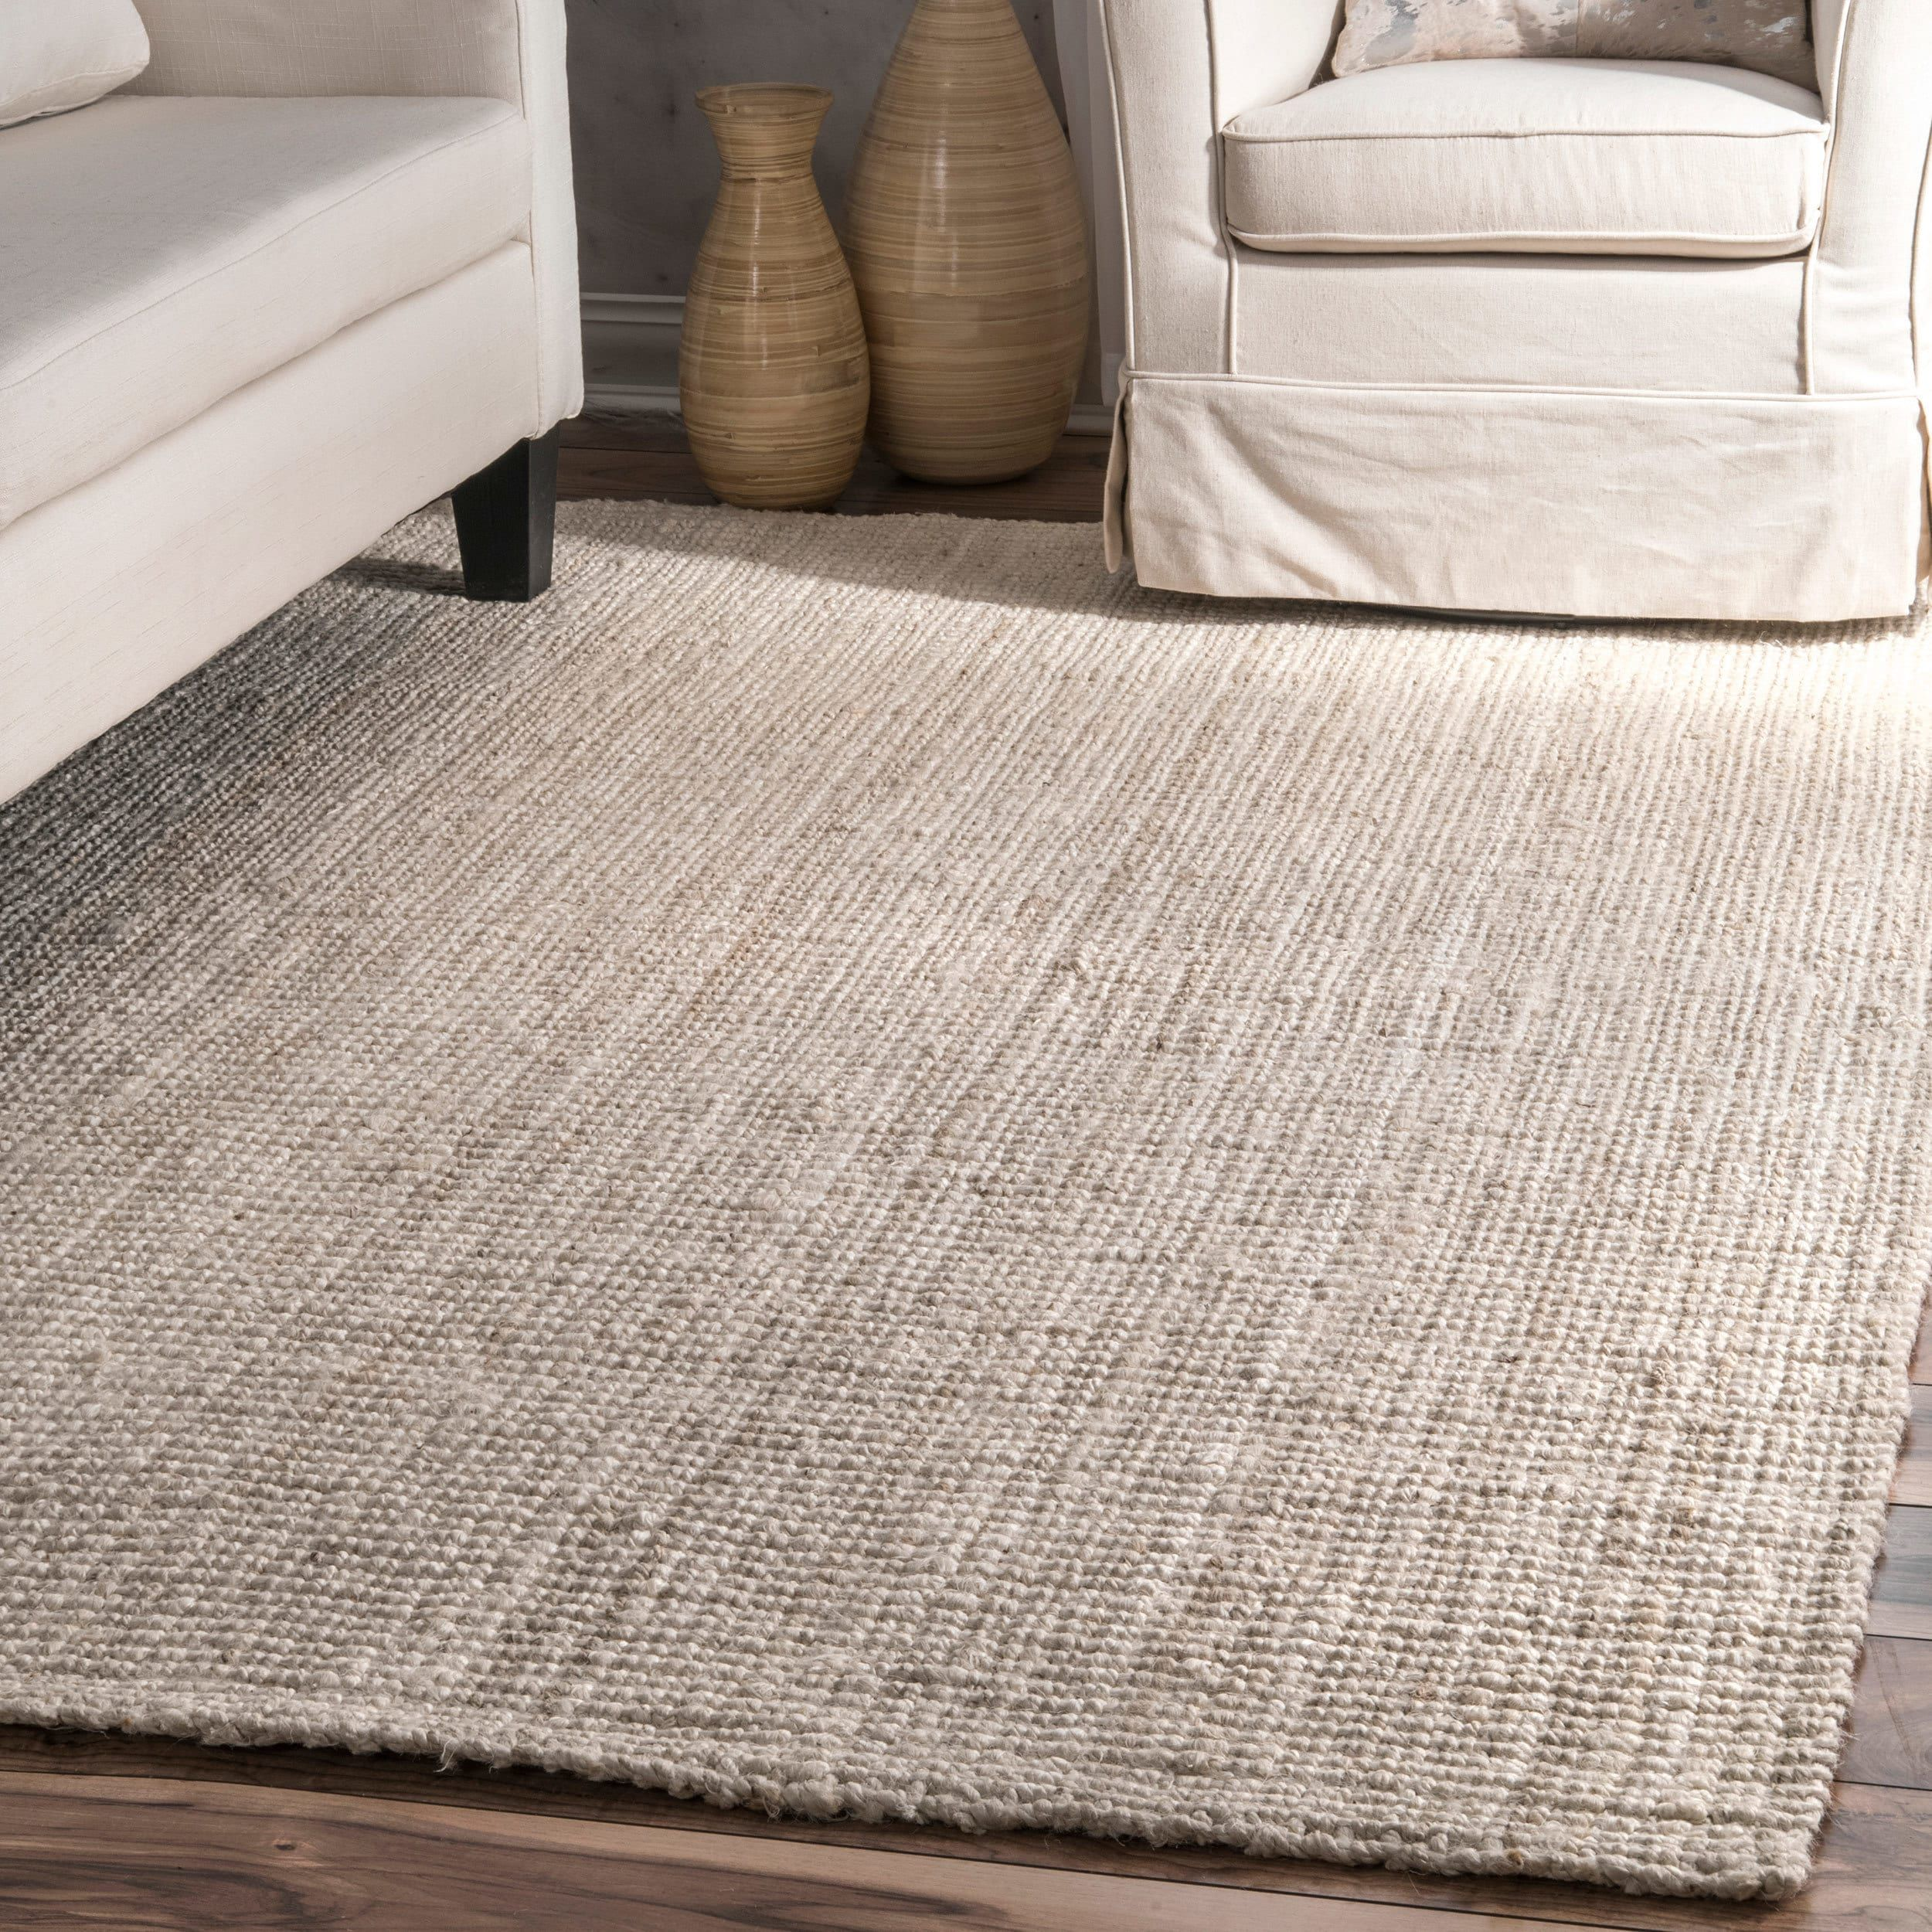 Overstock Com Online Shopping Bedding Furniture Electronics Jewelry Clothing More Jute Area Rugs Area Rugs Beige Area Rugs